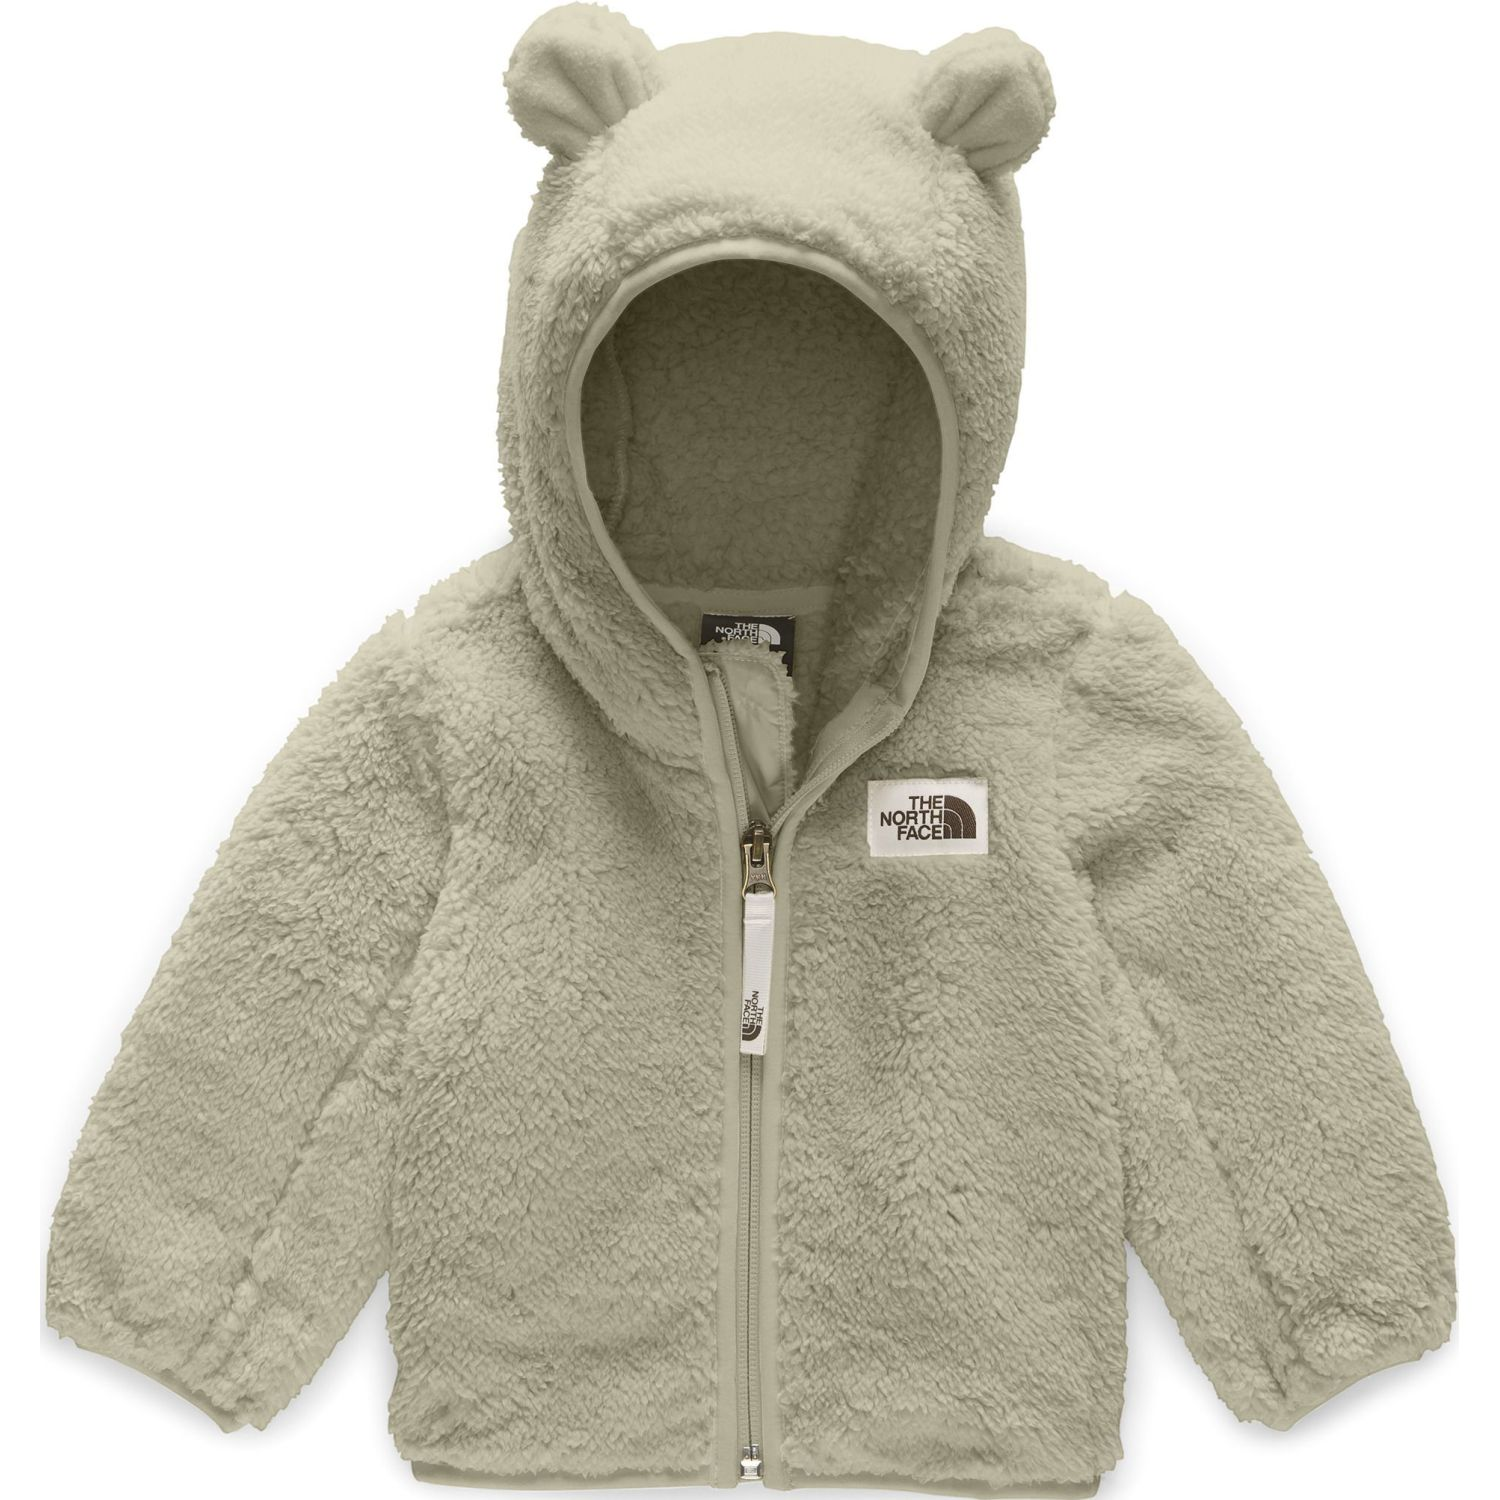 The North Face INFANT CAMPSHIRE BEAR HOODIE Verde chaquetas